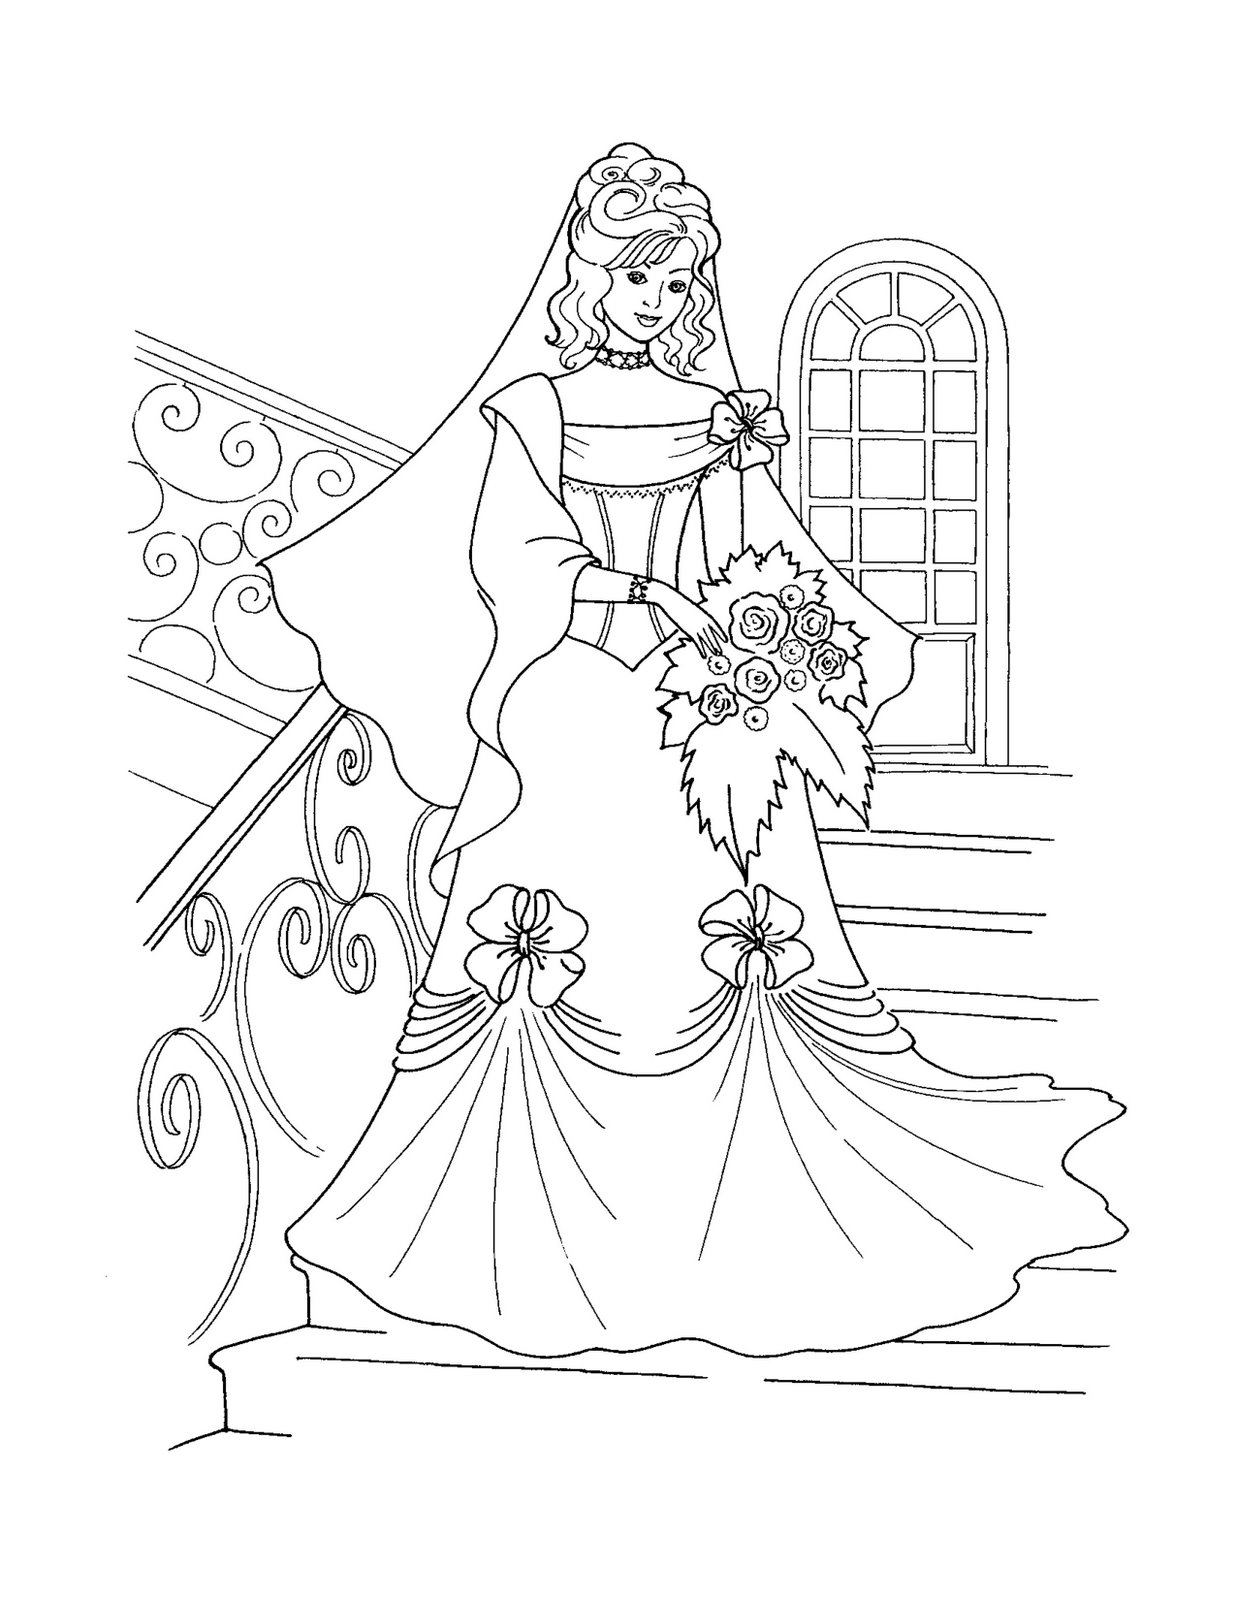 Free printable disney princess coloring pages for kids for Free color page printables